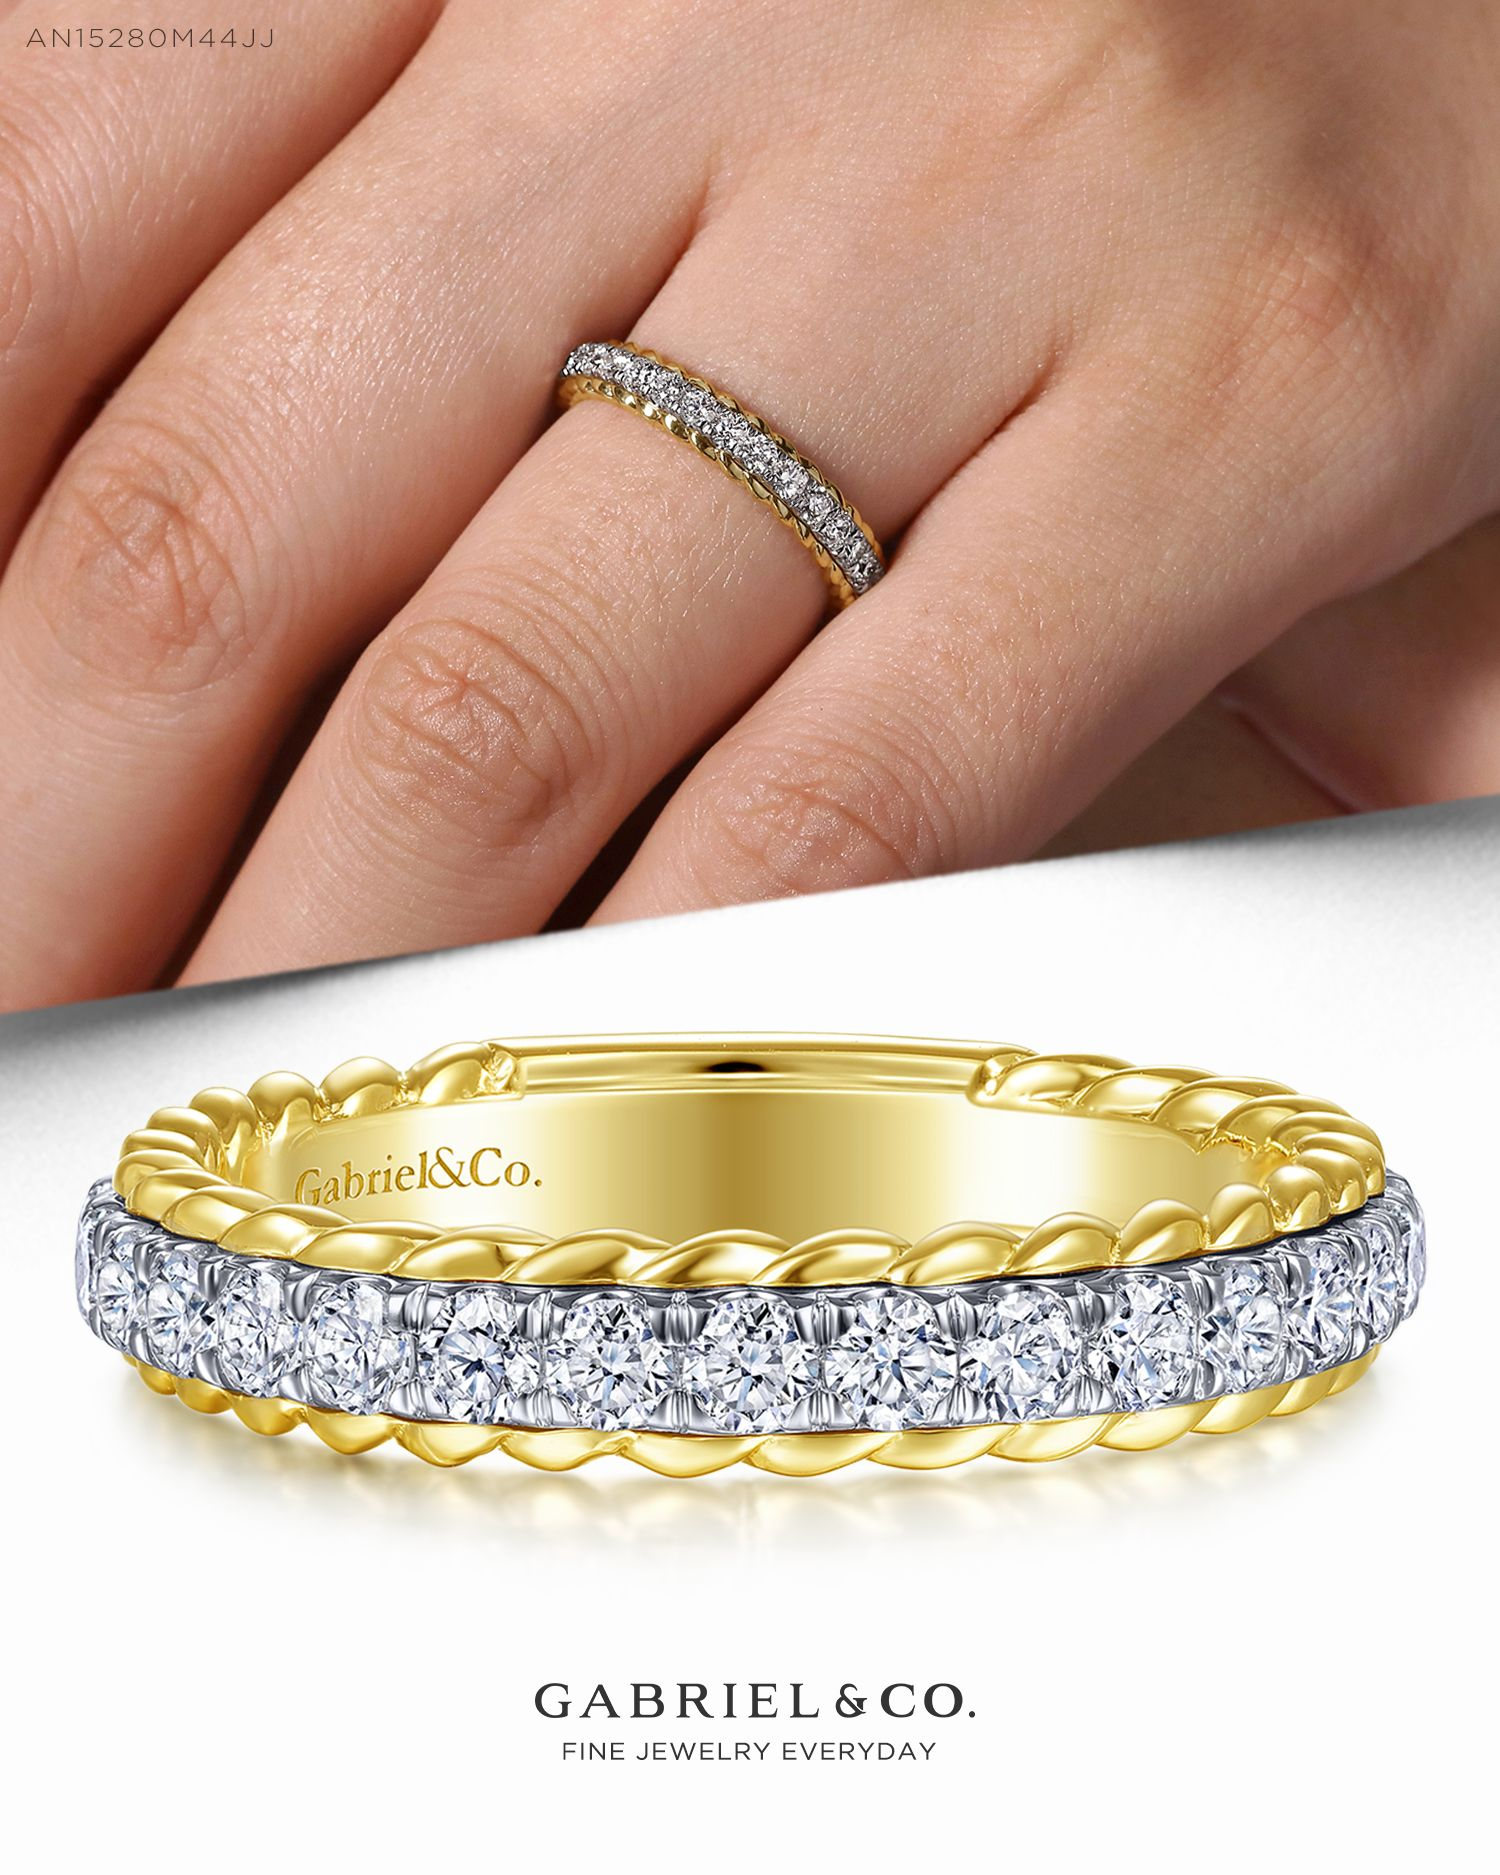 Anniversary Band Stackable Rings For Women Dainty Rings Solid Natural Diamond Band 14K Yellow Gold 0.20CT Handmade Wedding Band Gift